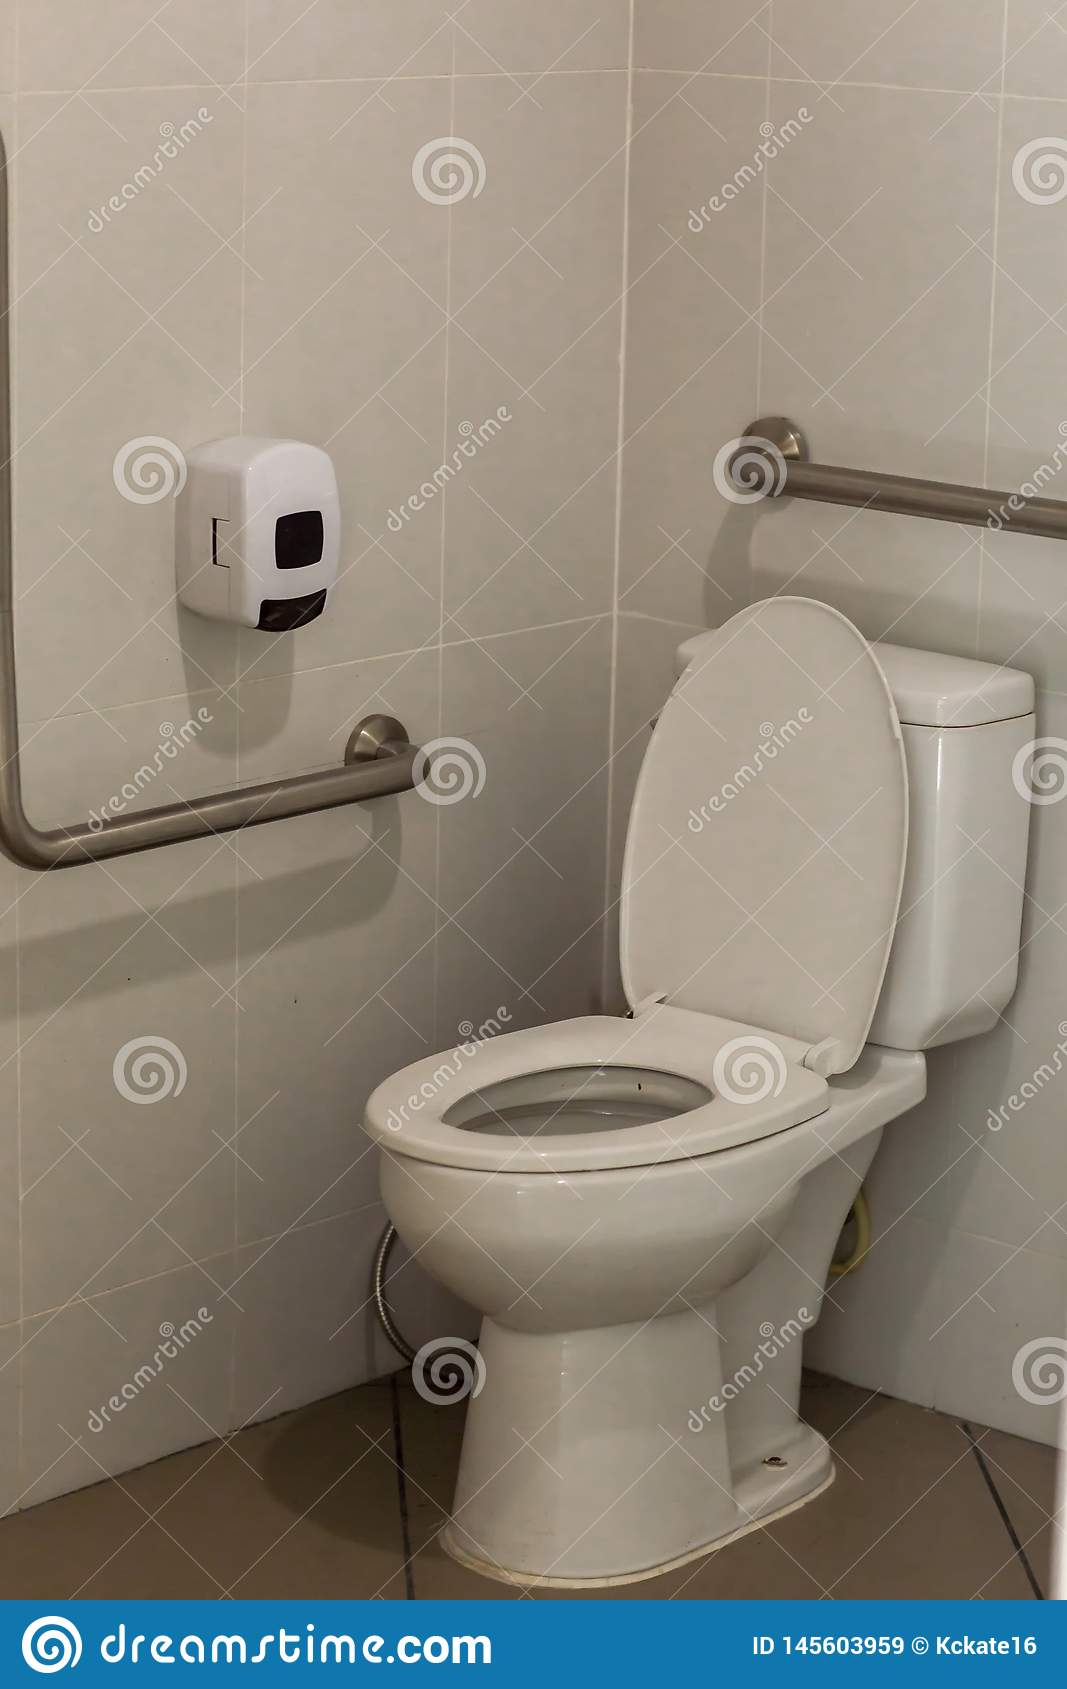 empty toilet for background. Toilet with handrails for the disabled. Focus on the lid of the toilet.